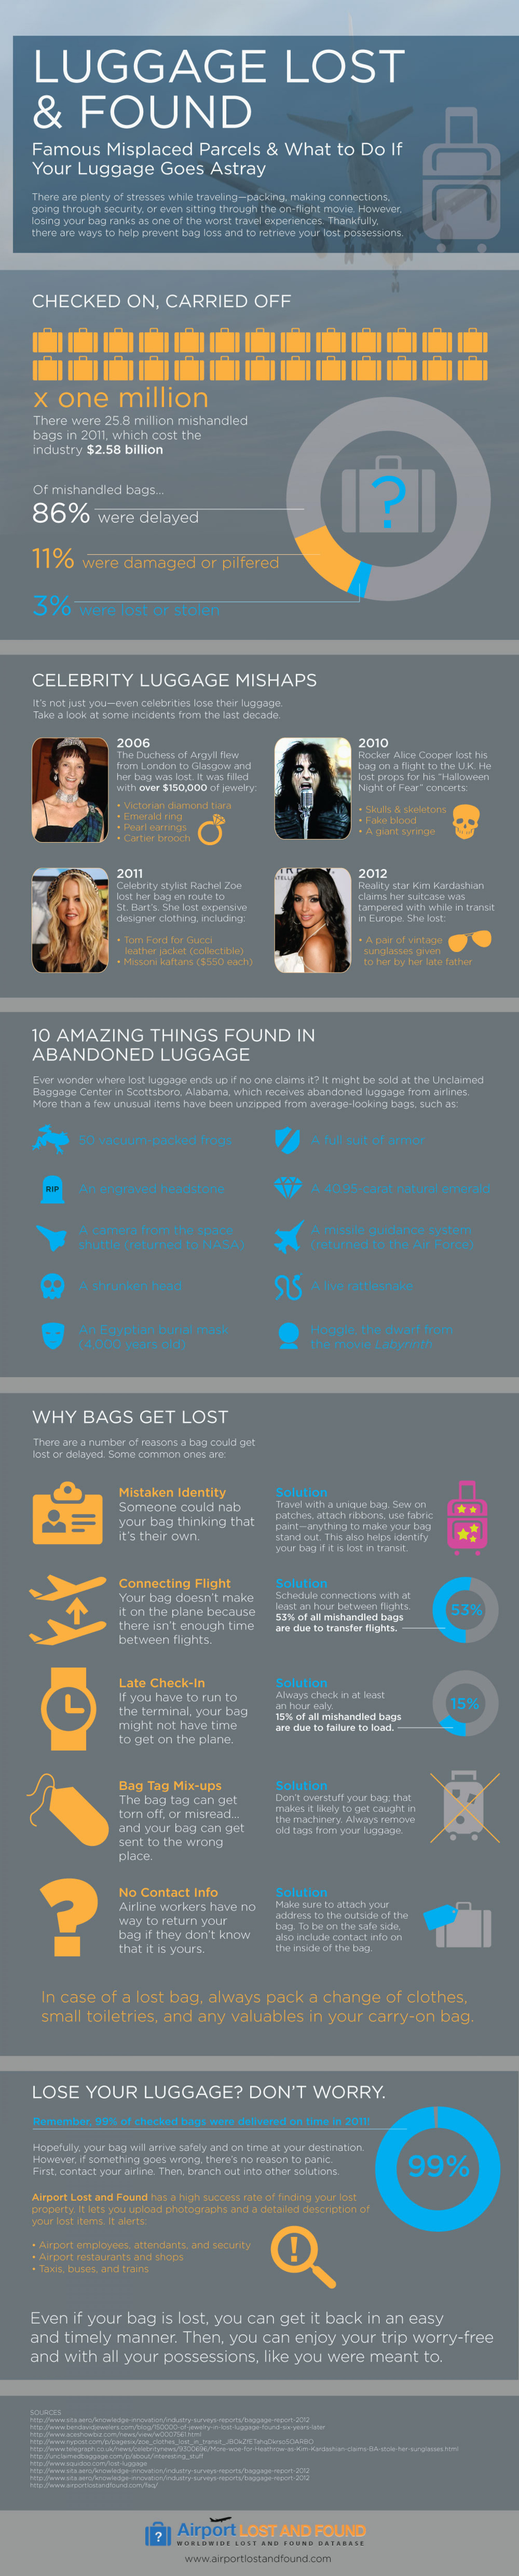 How to Get Your Lost Luggage and Unclaimed Baggage Back Infographic